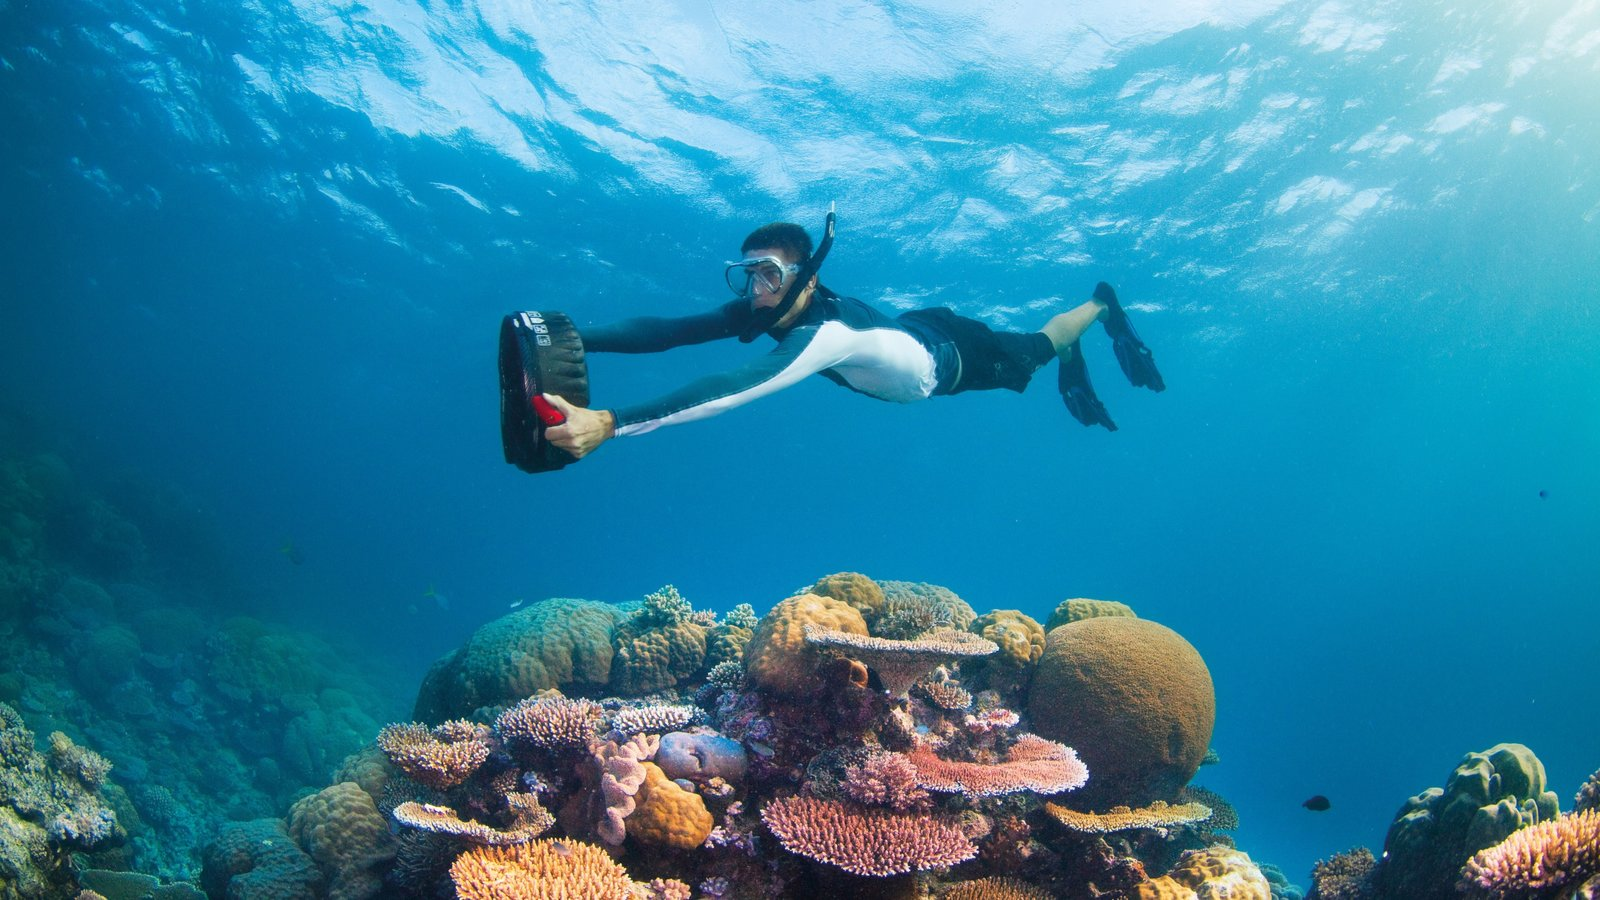 Whitsunday Islands showing marine life and colorful reefs as well as an individual male